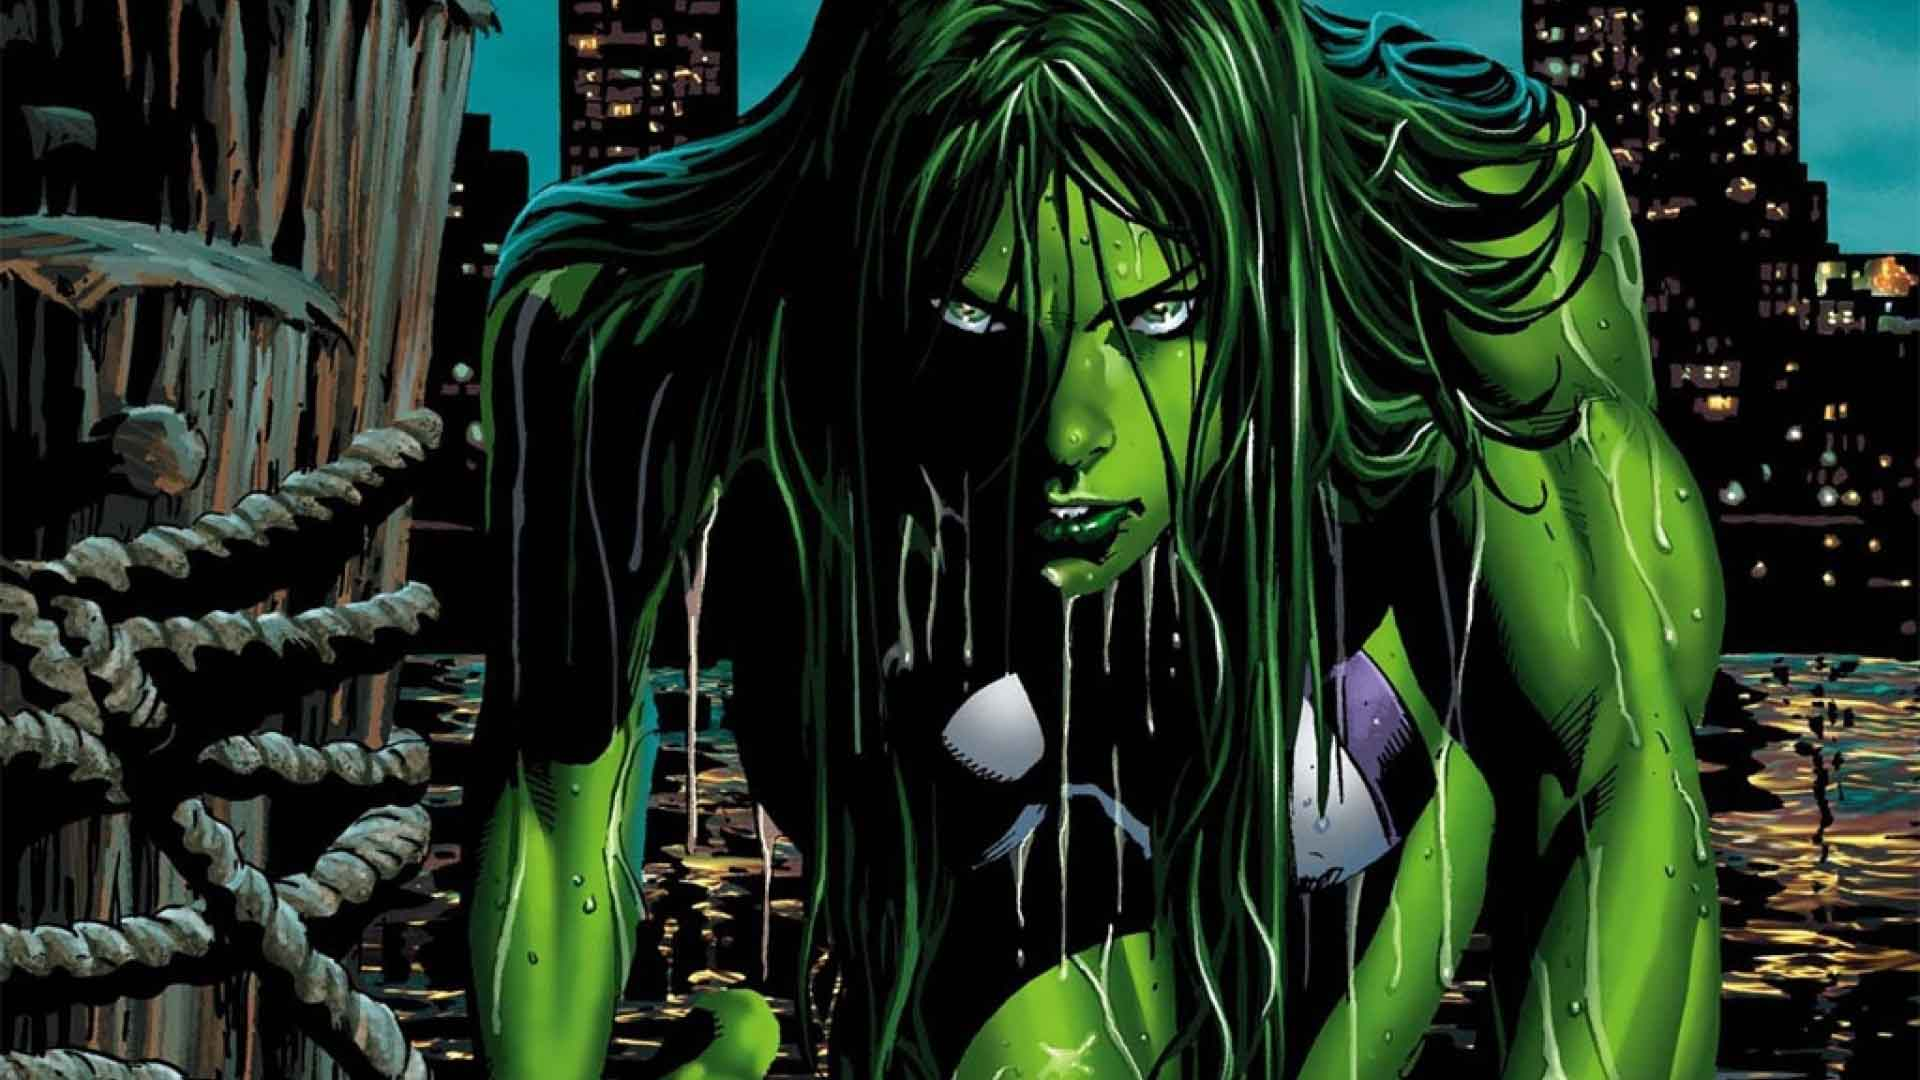 She Hulk Green Comics Girl Wallpaper   DreamLoveWallpapers 1920x1080